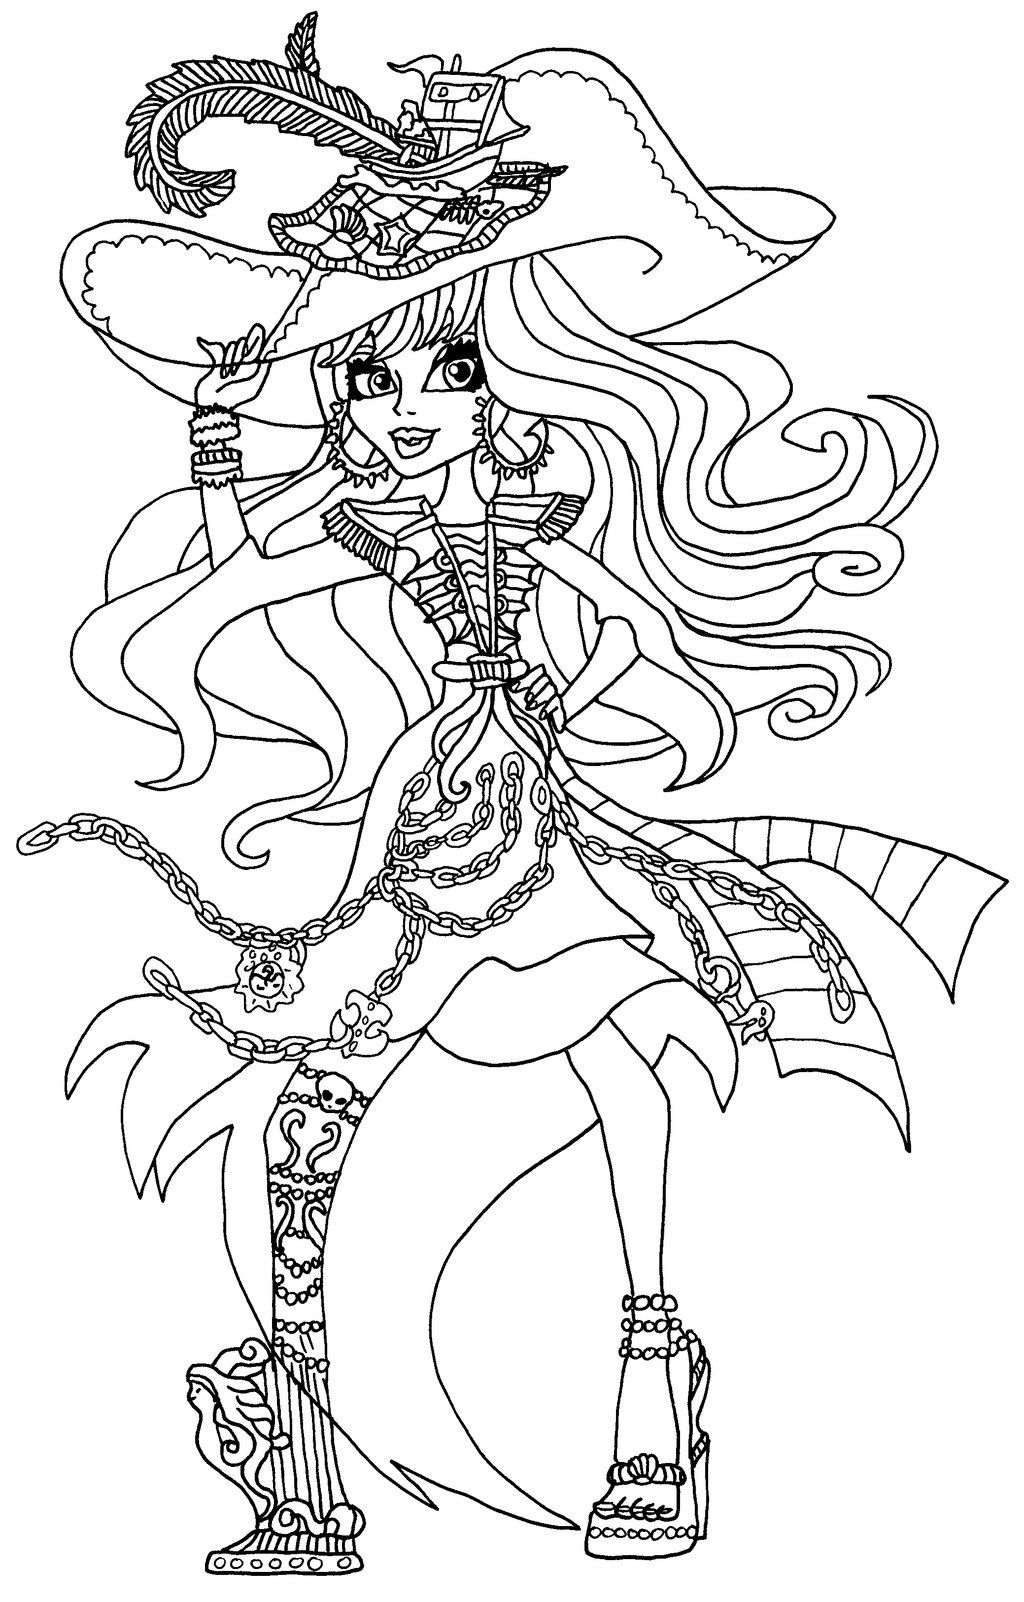 Monster High Coloring Pages Vandala - Google Search avec Coloriage Monster High A Imprimer